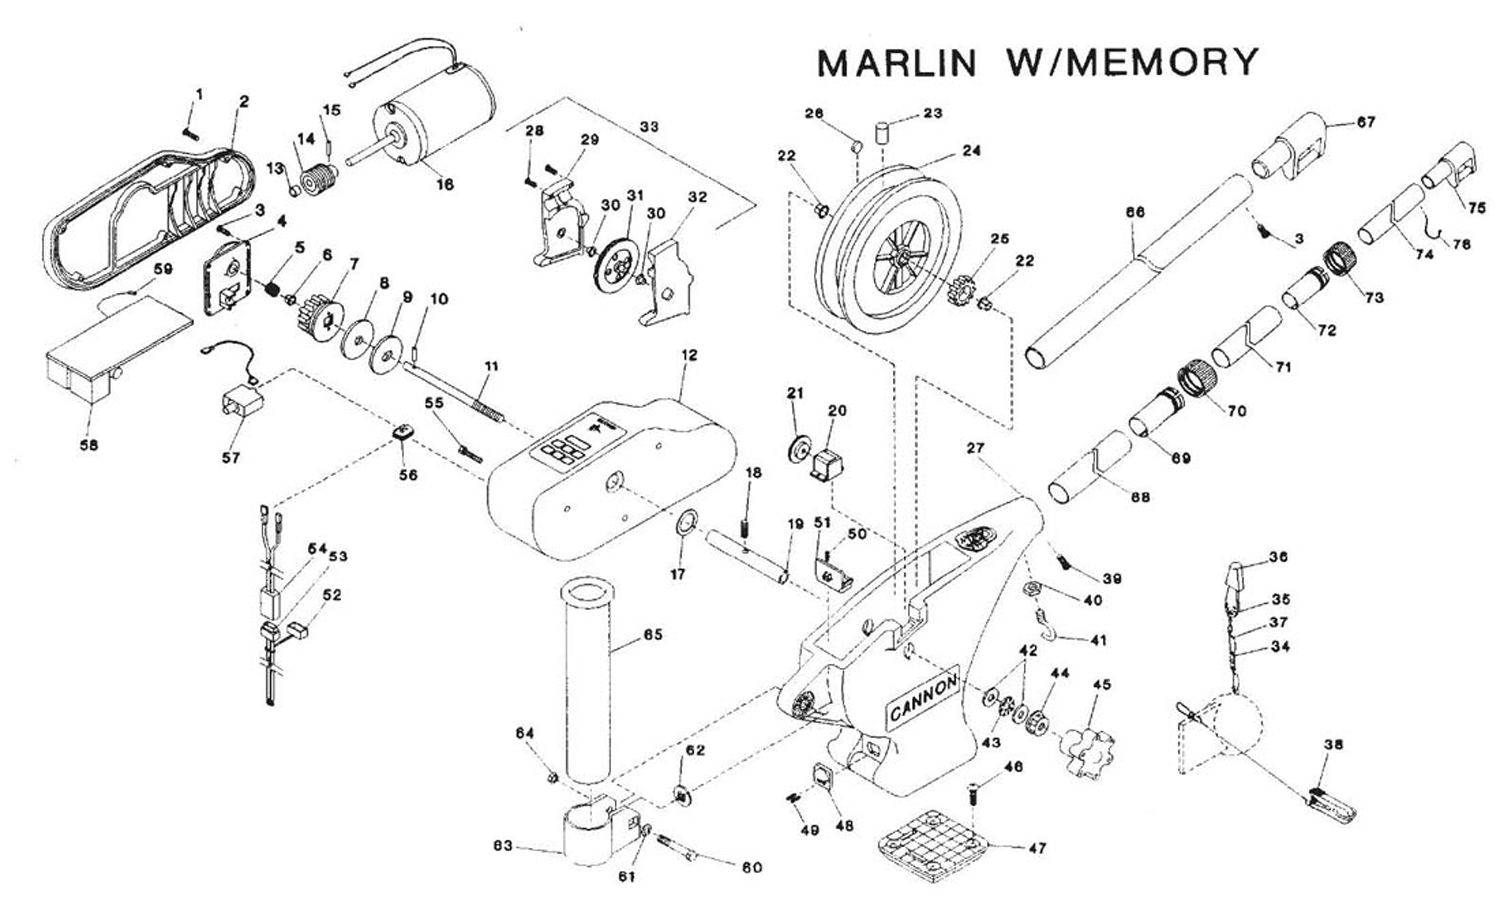 Order Cannon Marlin with Memory Electric Downrigger Parts